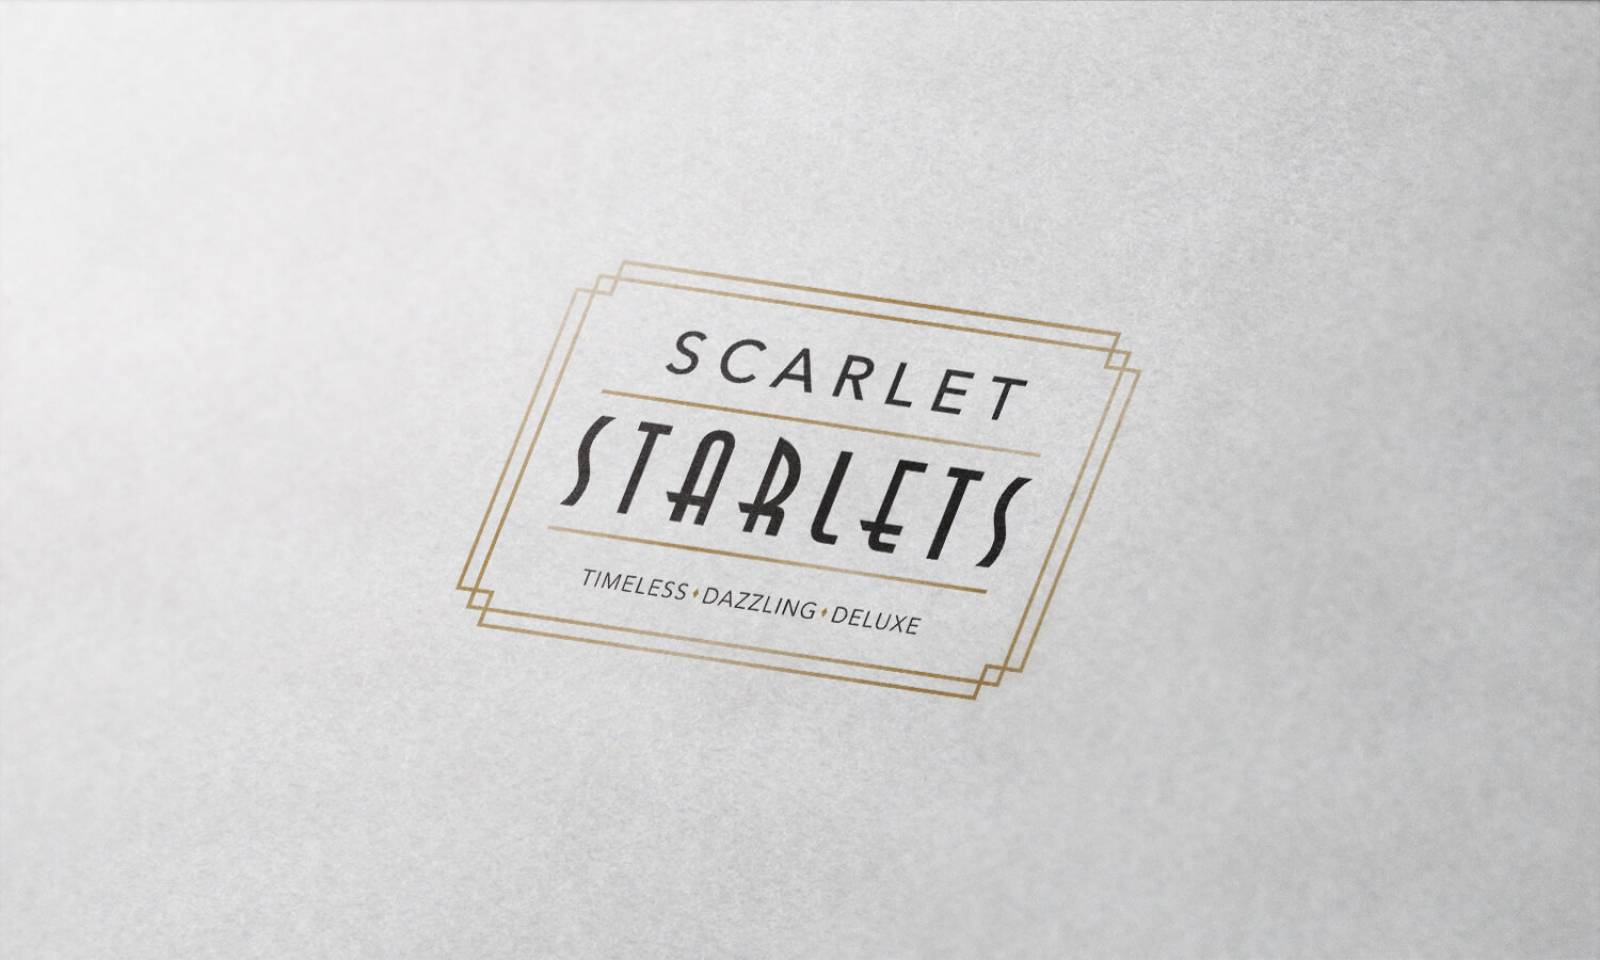 Scarlet-starlets-2-logo-corporate-identity-agency-graphic-design-canterbury.jpg